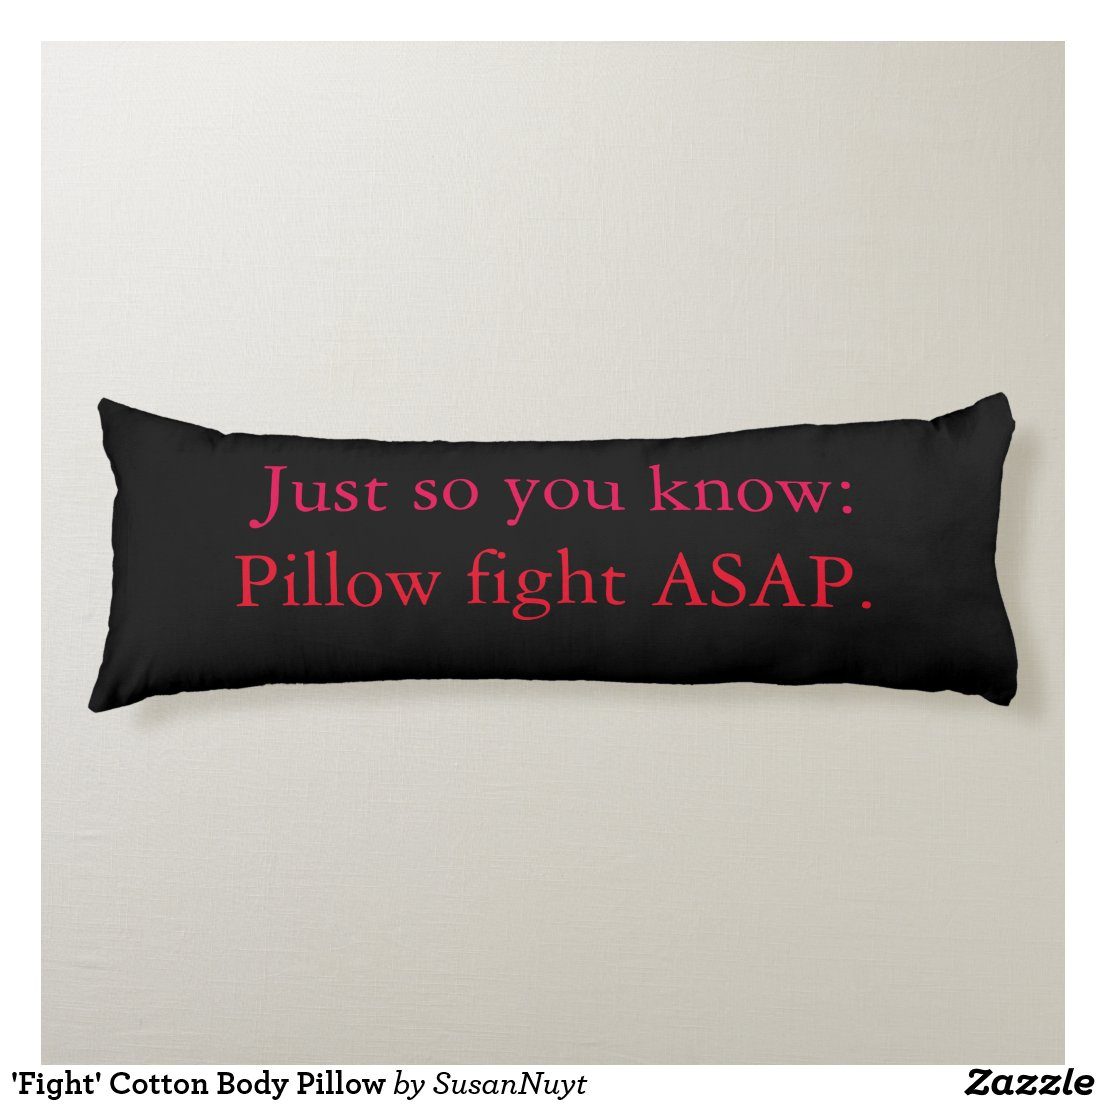 'Fight' Cotton Body Pillow